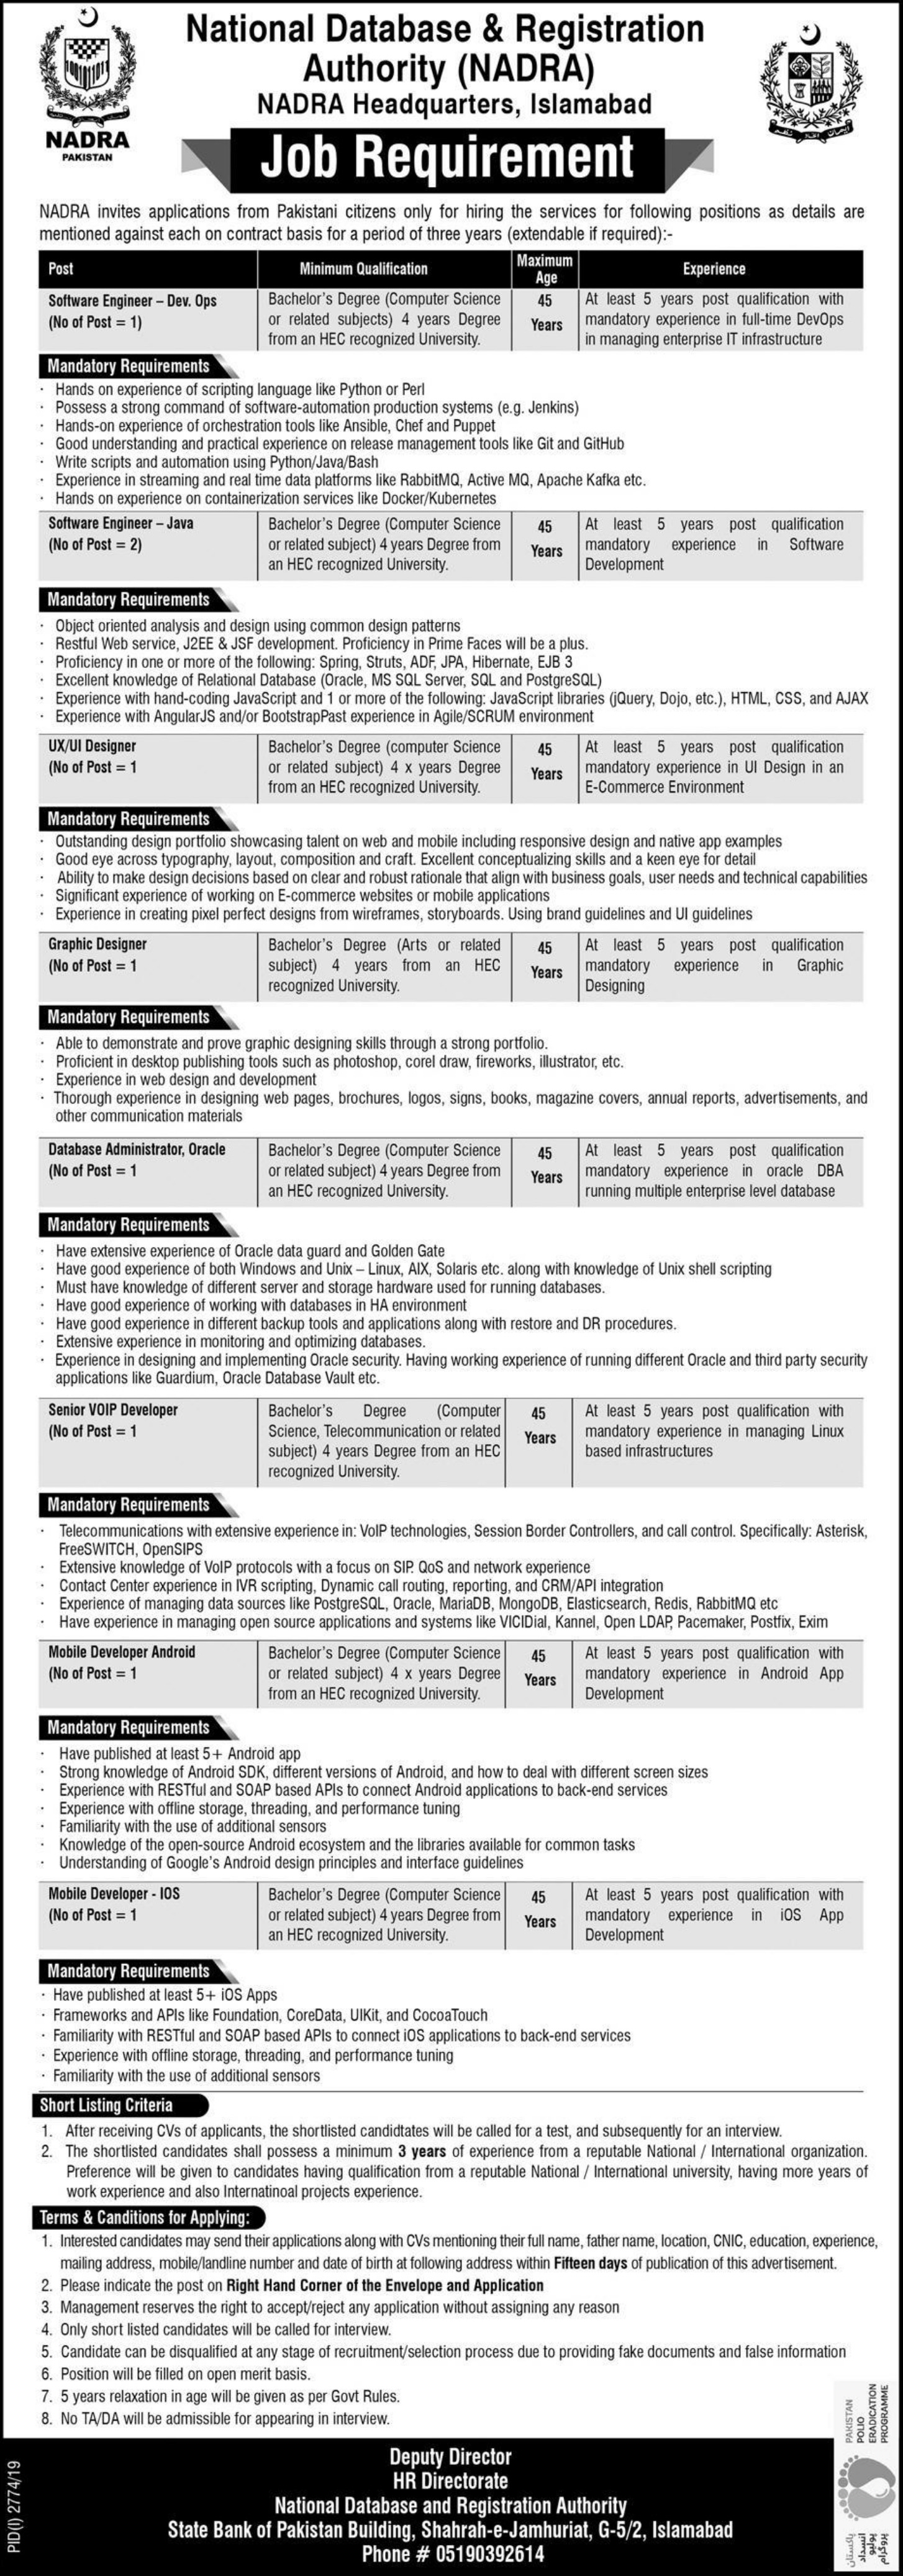 NADRA Headquarters Islamabad Jobs 2019